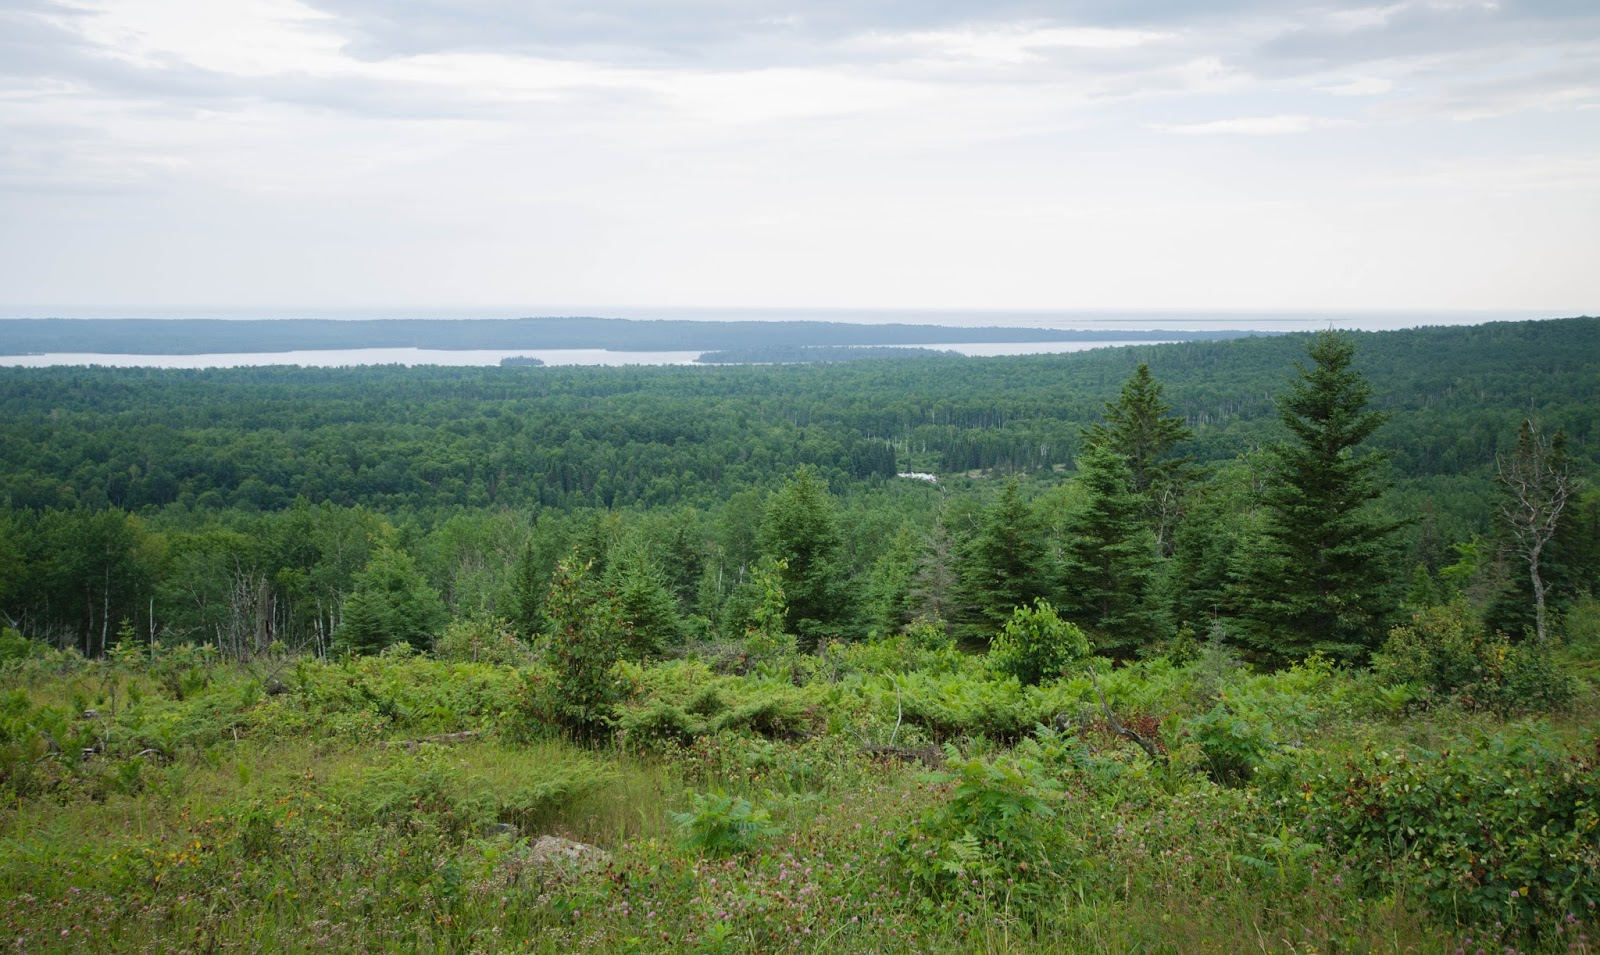 isle royale national park Isle royale national park is located in the northwest corner of lake superior the  island contains a roadless backcountry which prohibits the.